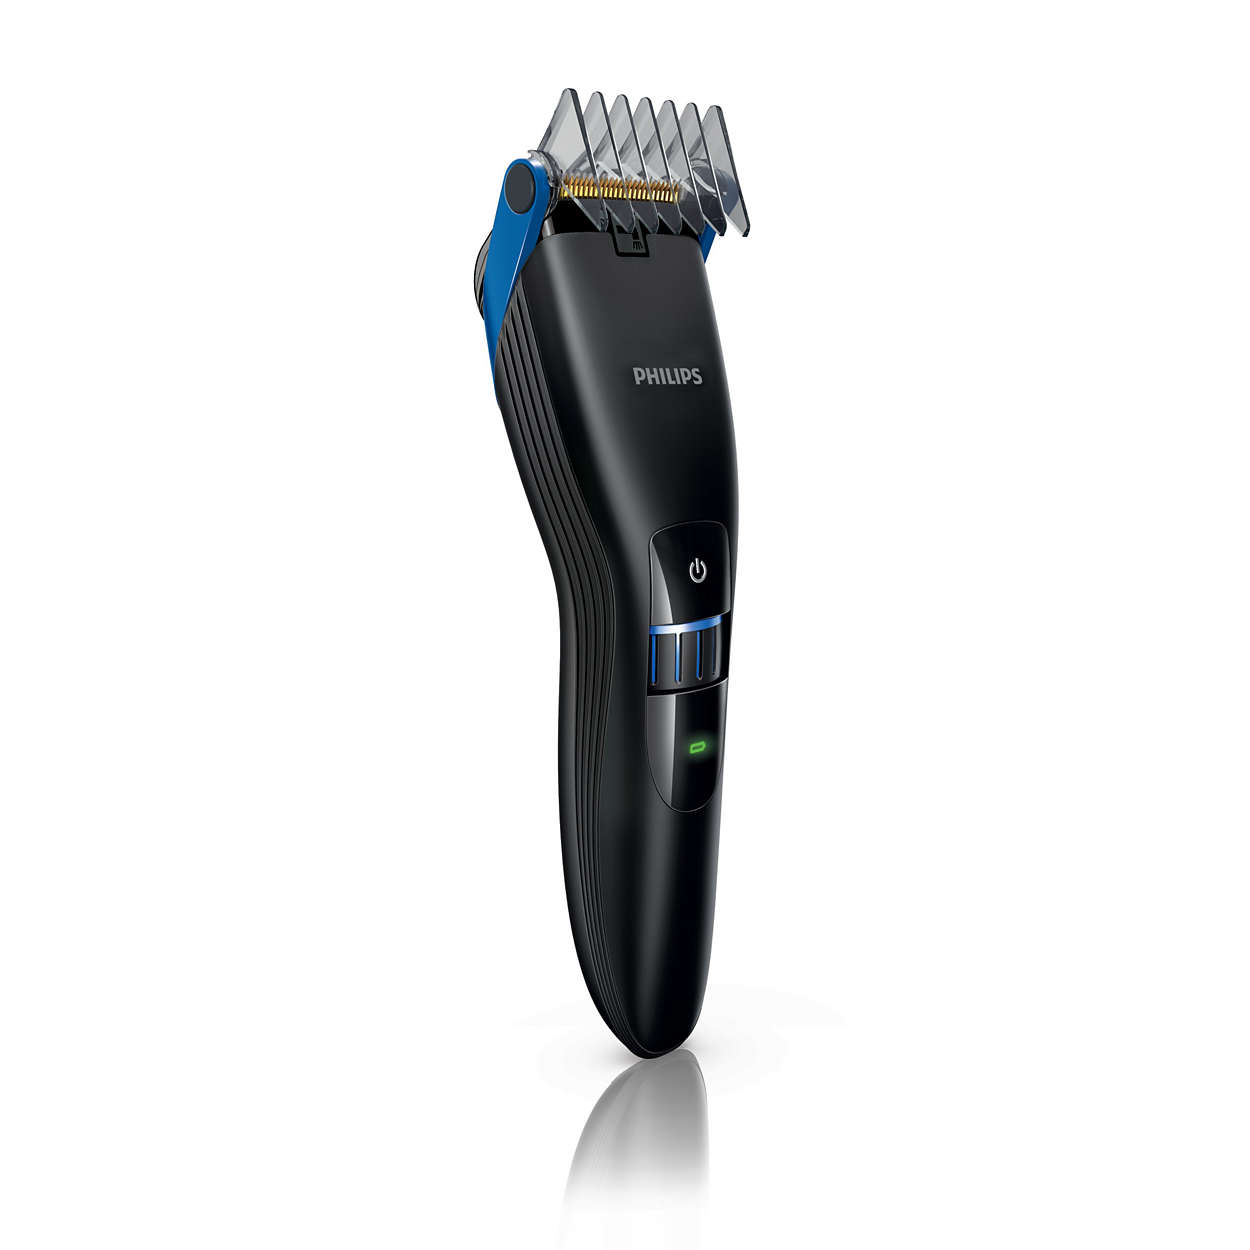 Hairclipper series 5000 Hajvágó QC5370 15  a7f8aeb015